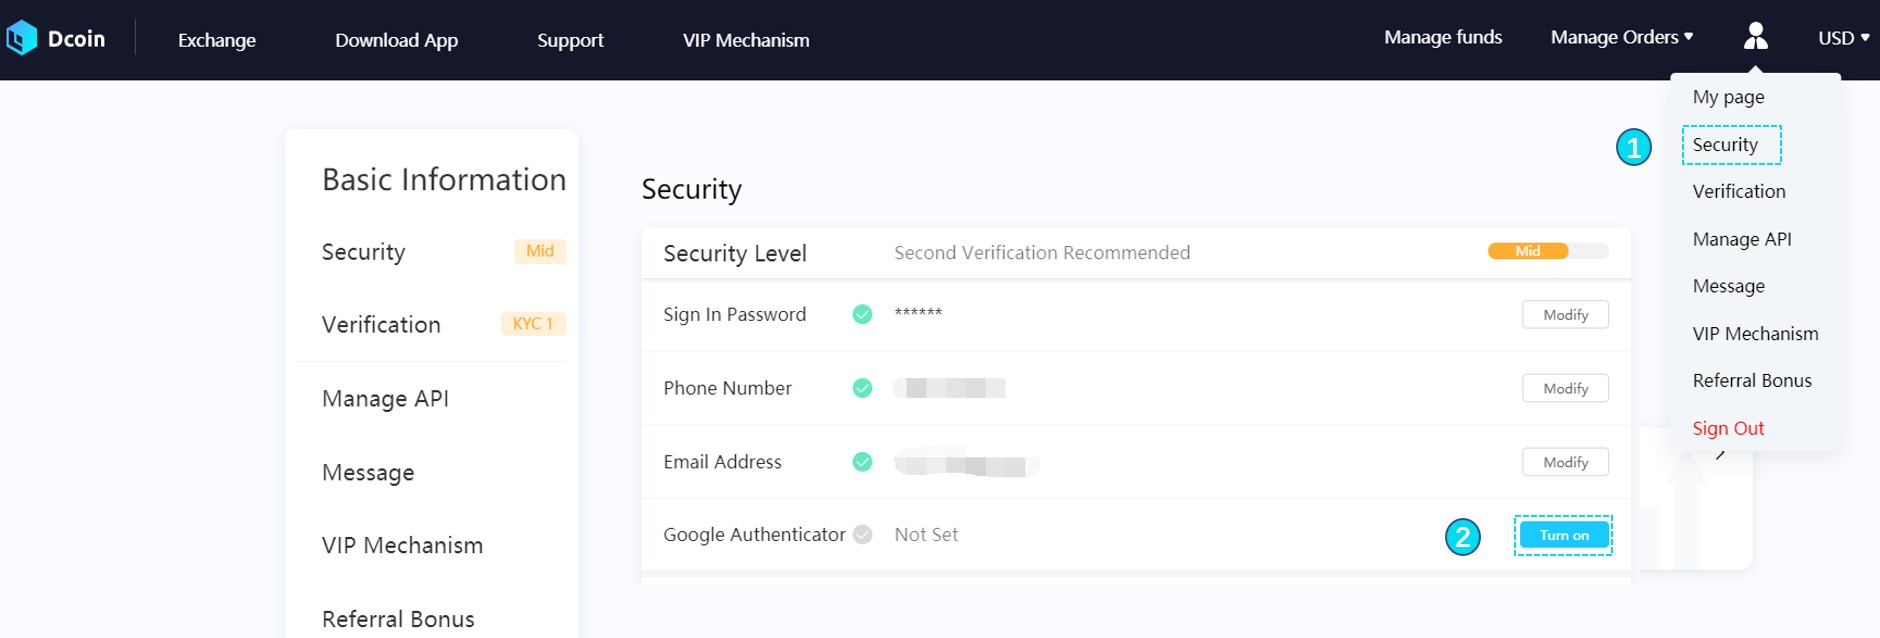 How to Connect to Google Authenticator? – Dcoin HelpCenter